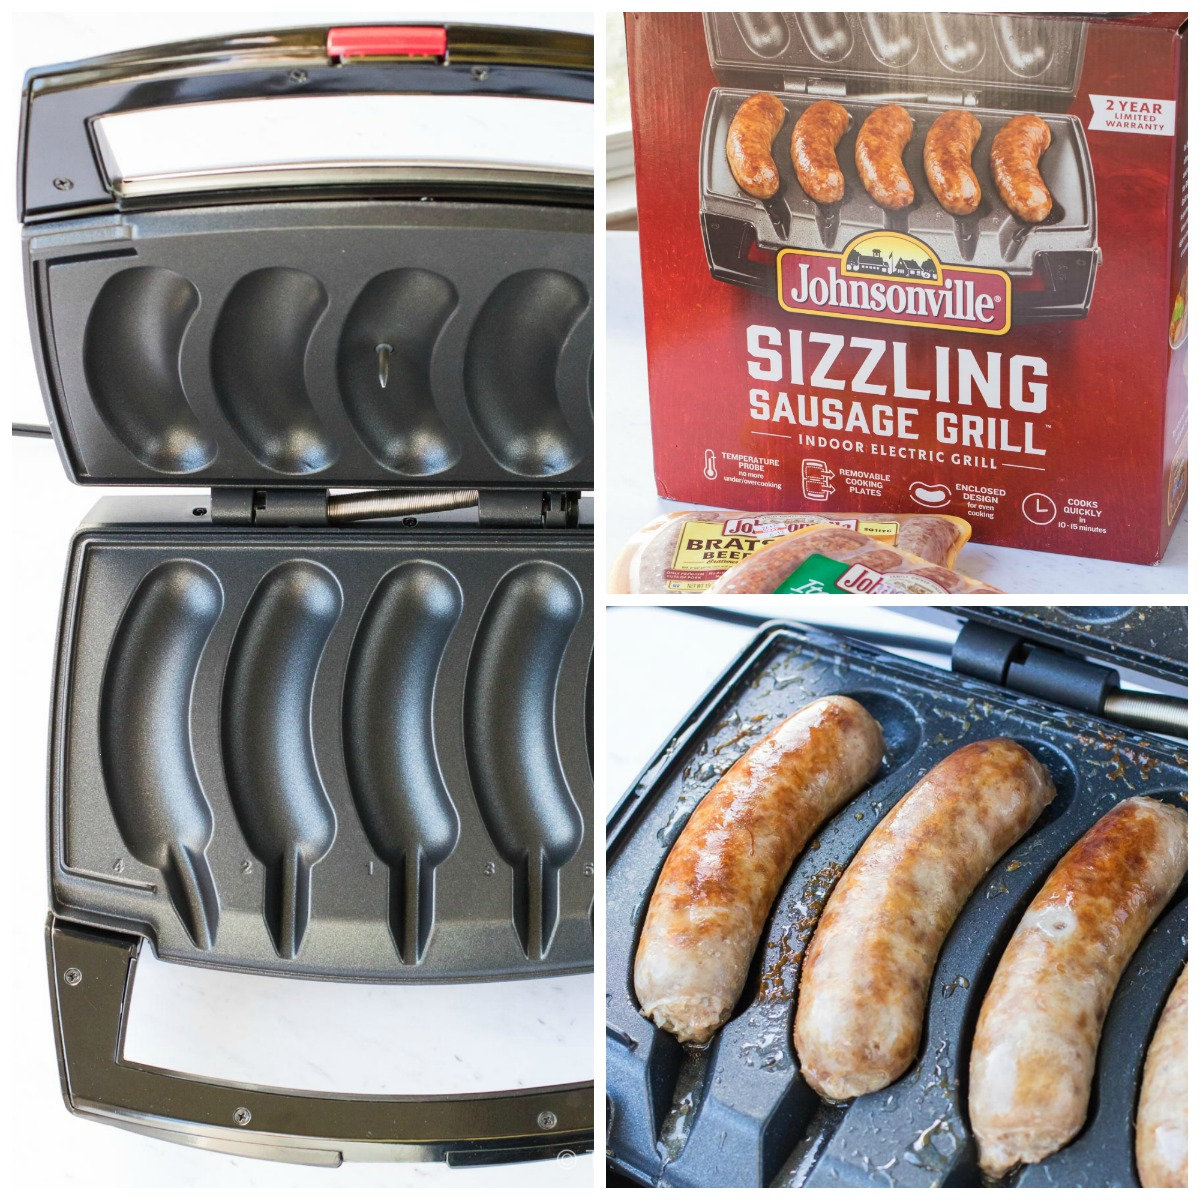 The Johnsonville Sizzling Sausage Grill perfectly cooks 1-5 sausages in under 15 minutes! Use it anywhere you have an electrical outlet, and cleanup is super easy in the dishwasher!